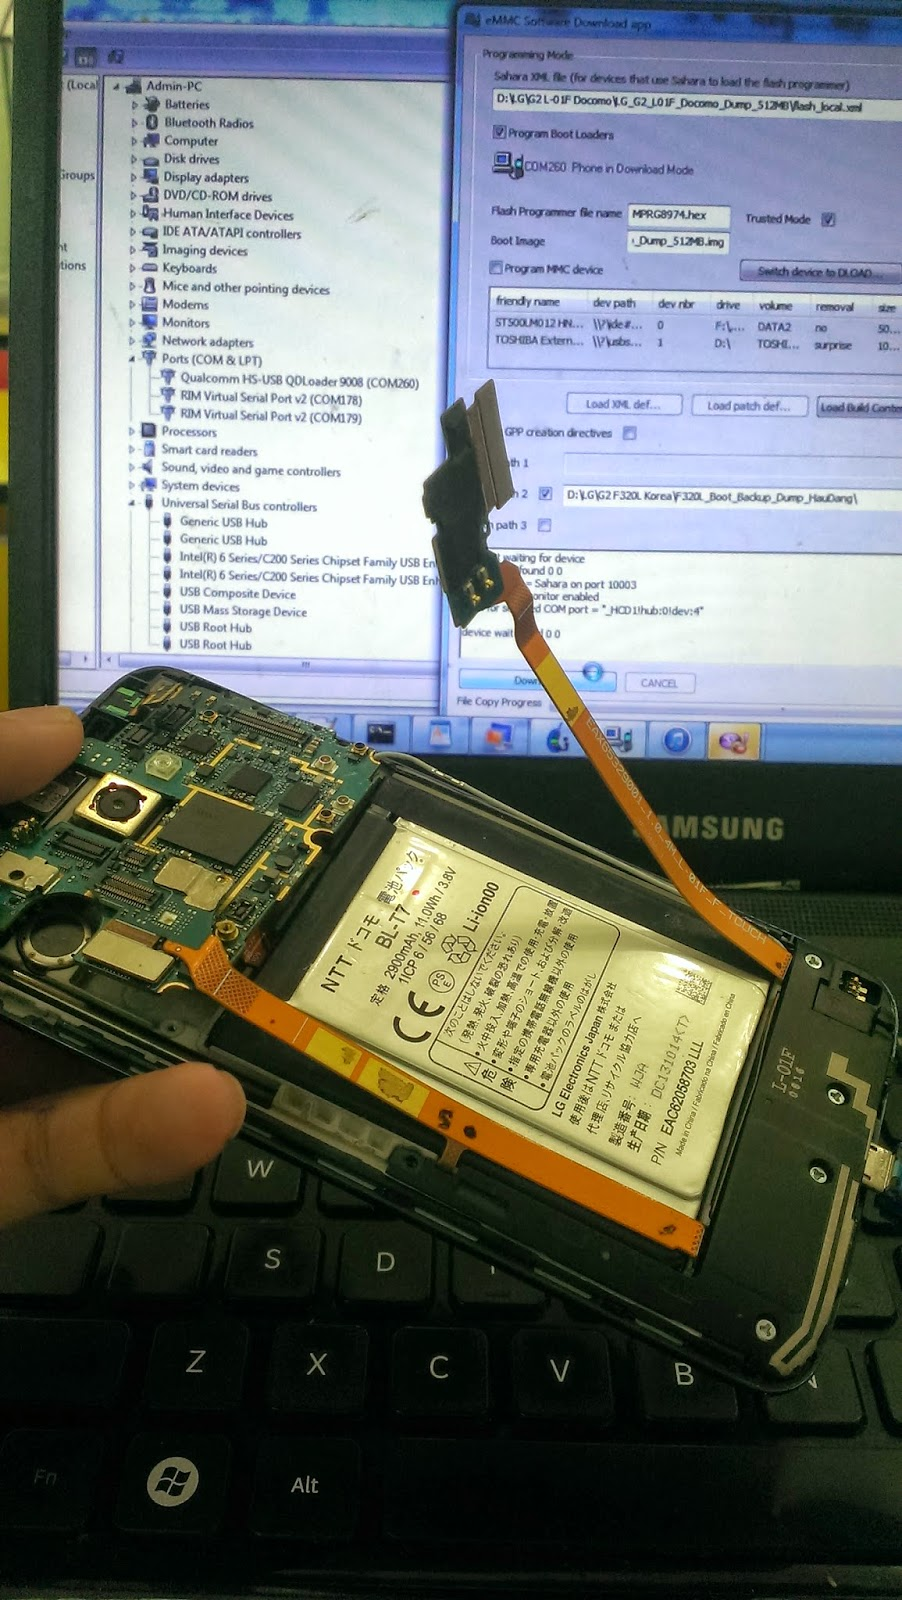 Lg G2 Fastboot Drivers Related Keywords & Suggestions - Lg